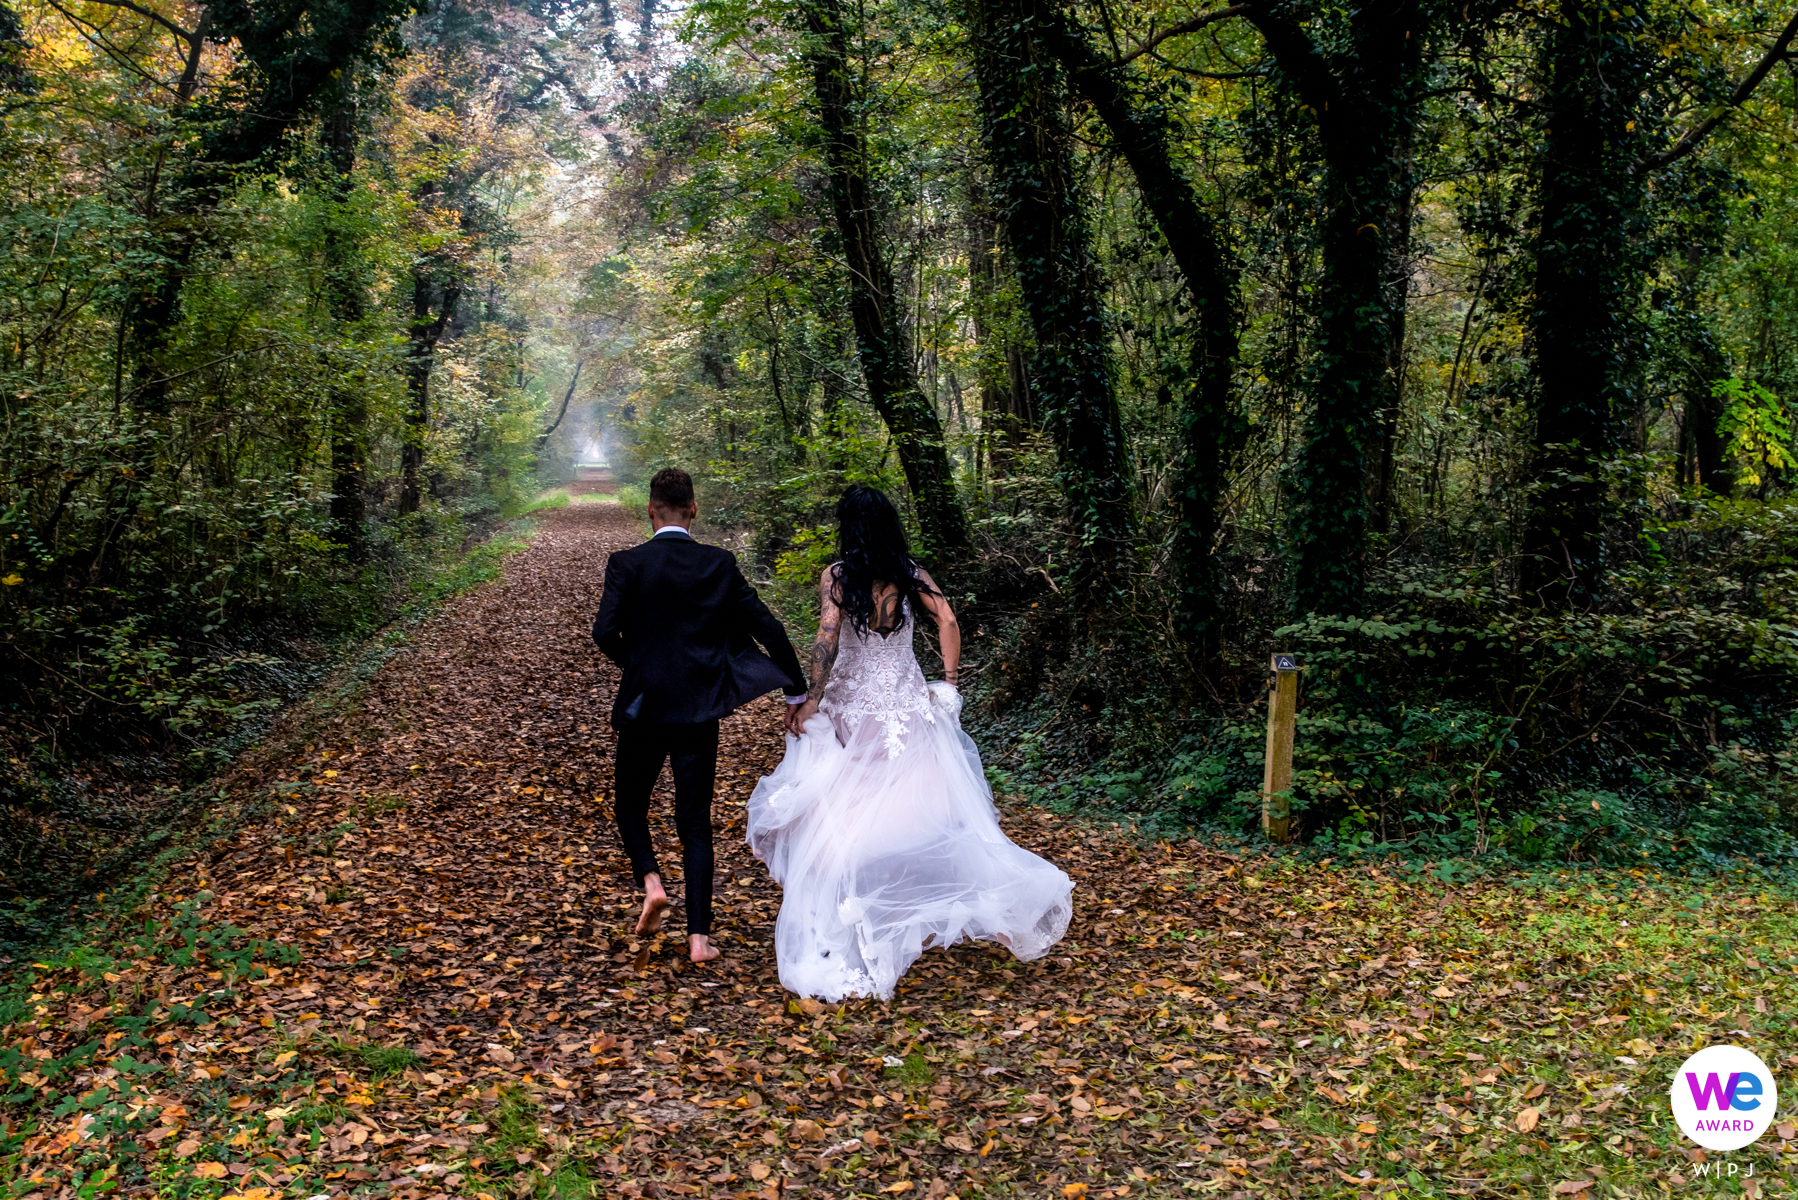 Wedding Picture from Agriturismo Corte Barco | Hand in hand running barefoot towards the point of light at the end of a long corridor formed by trees